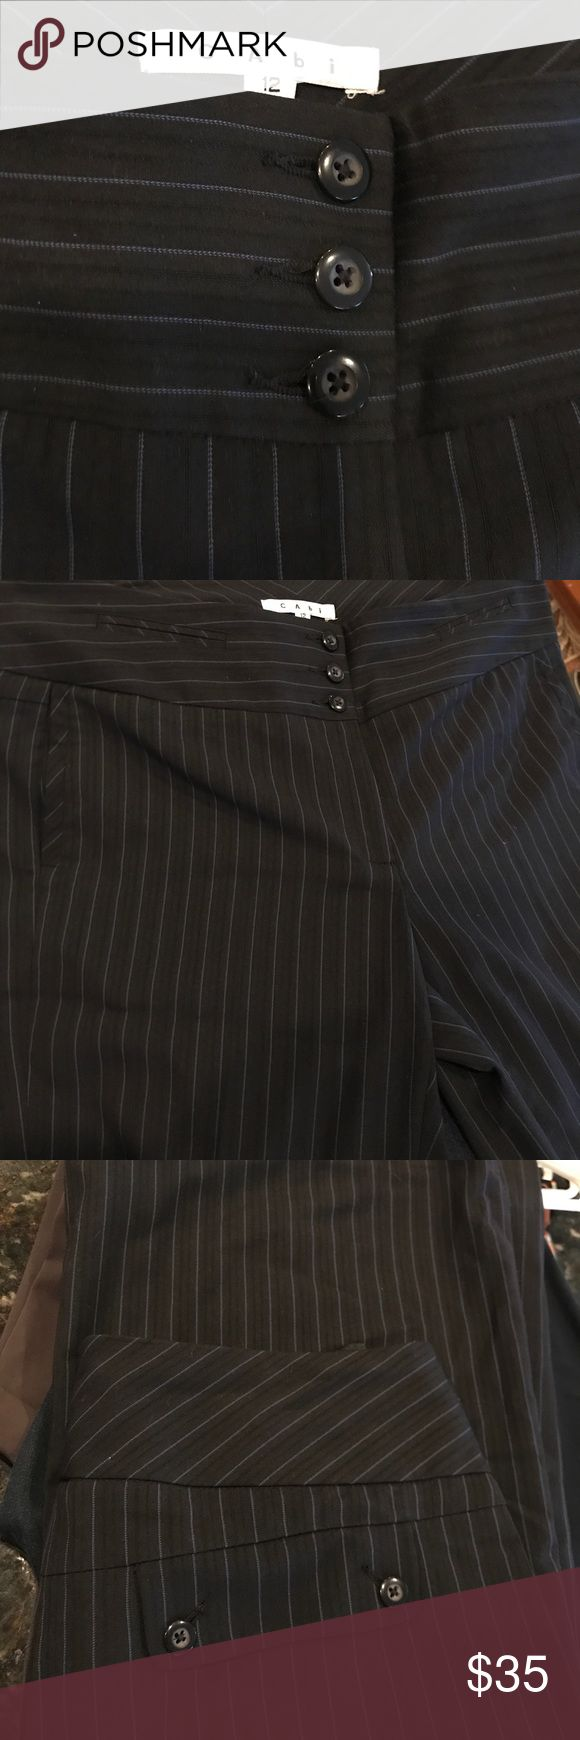 CAbi Dress Slacks Dark blue dress slacks. For the lady with long longs. I'm 5x7 they are way too long for me. Too lazy to get them hemmed. Great condition! CAbi Pants Trousers